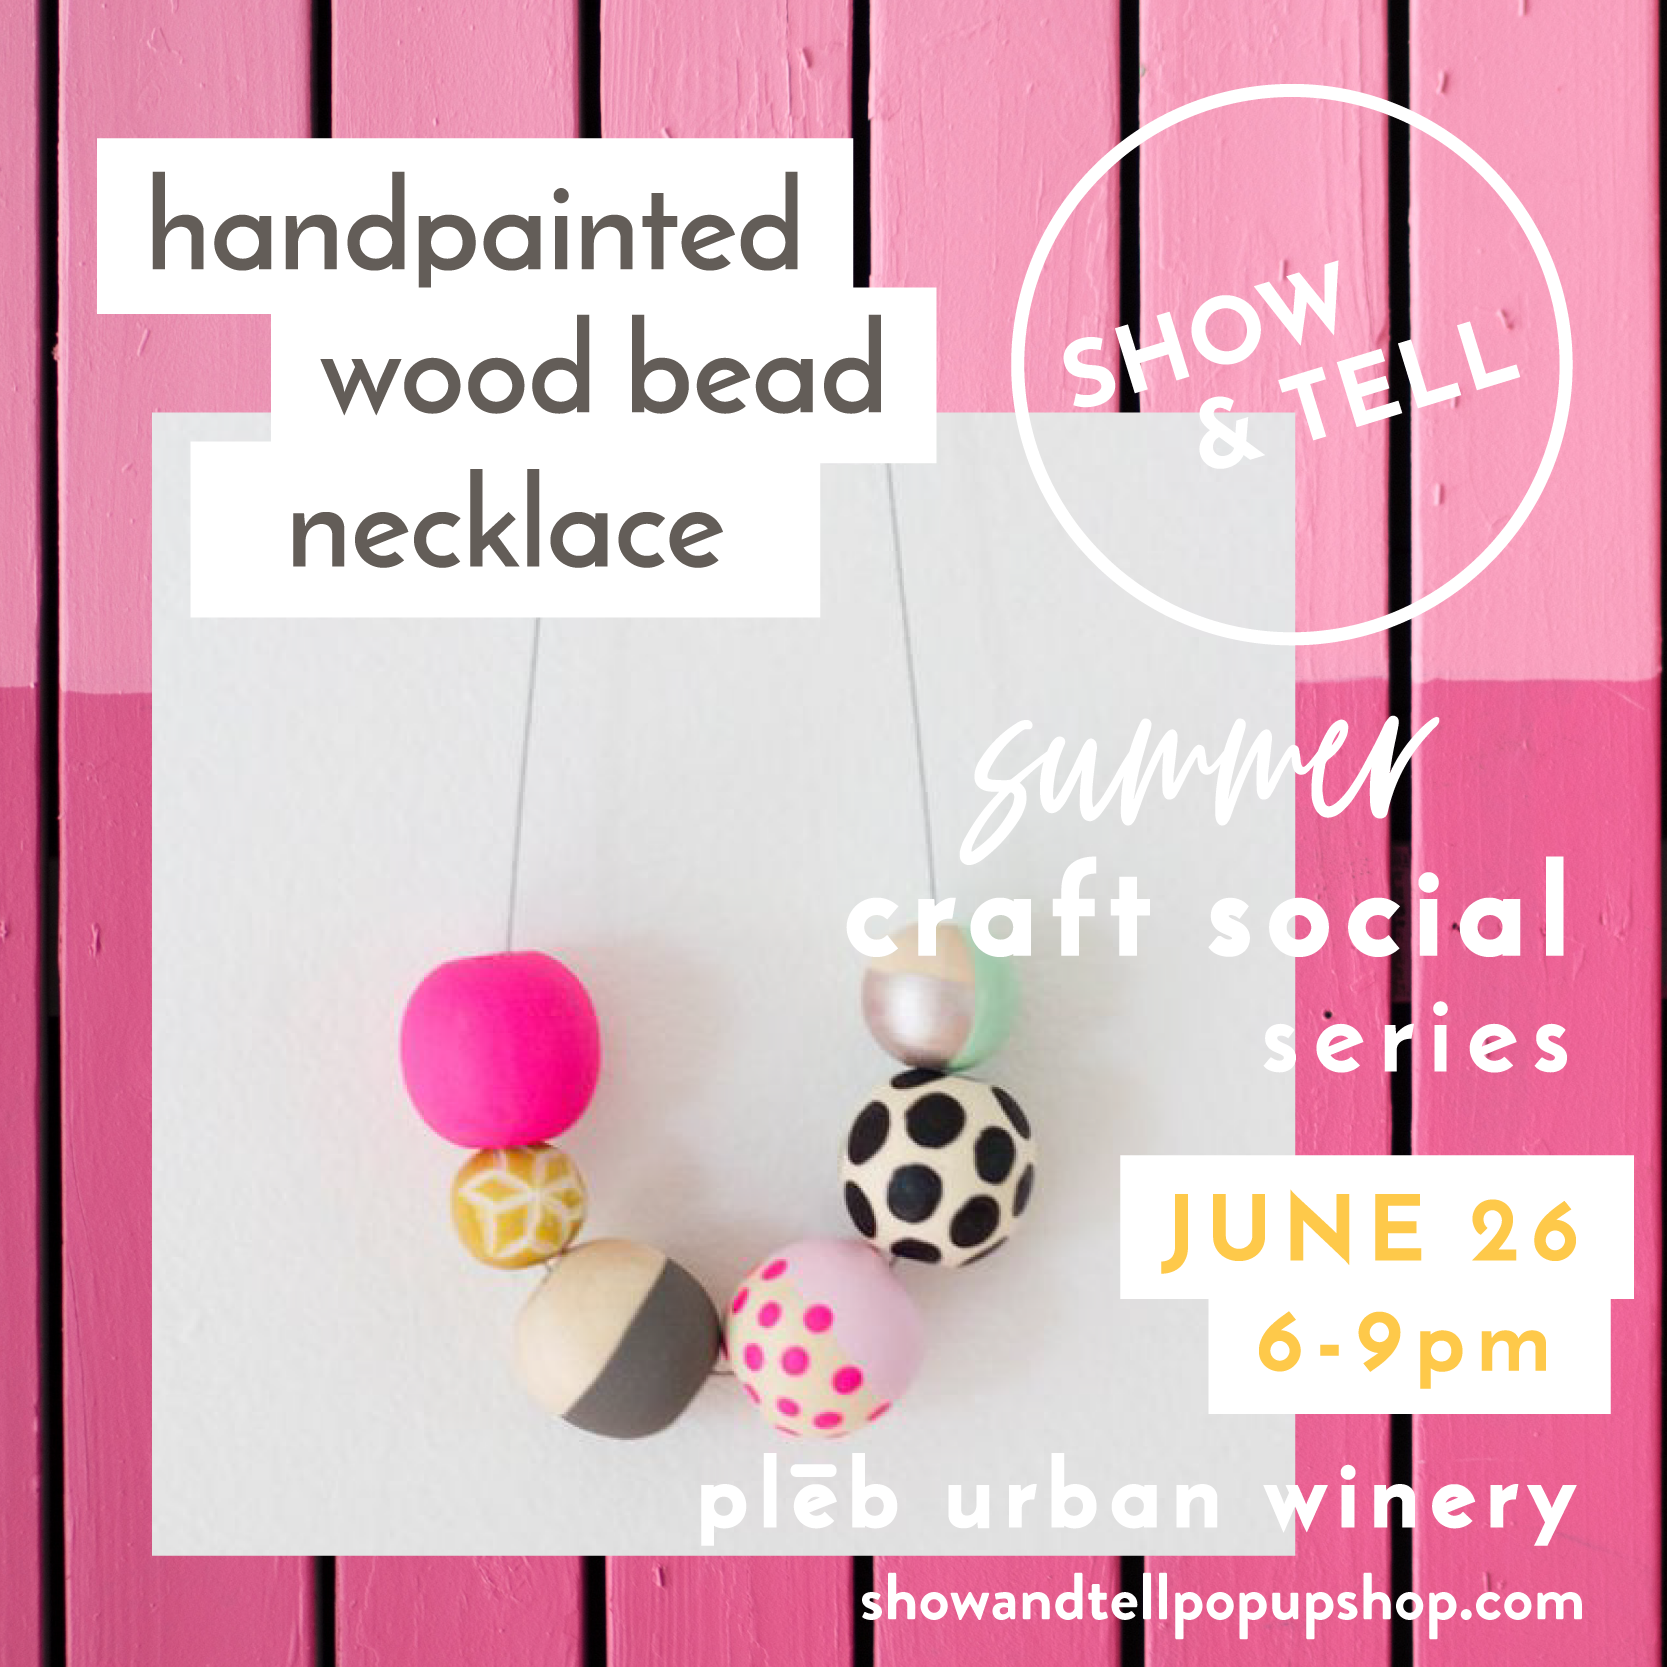 CRAFT SOCIALS_HANDPAINTED WOOD BEAD NECKLACE_01.png